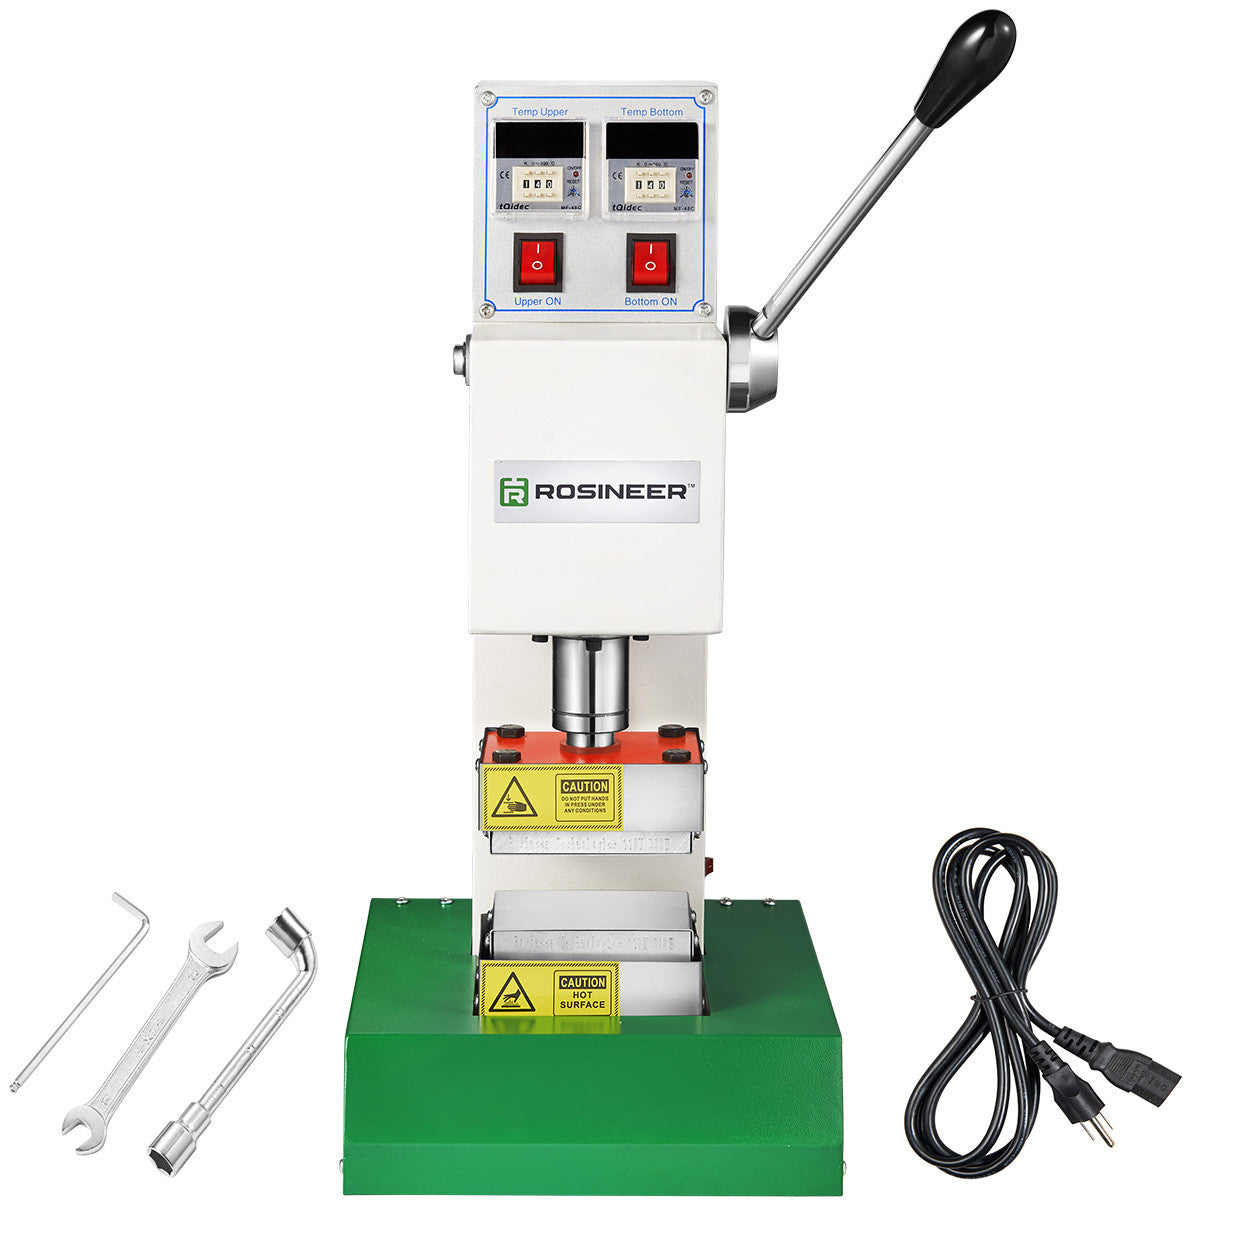 Rosineer RNR-MV2 Manual Rosin Press Machine - Food Grade Stainless Steel Plates